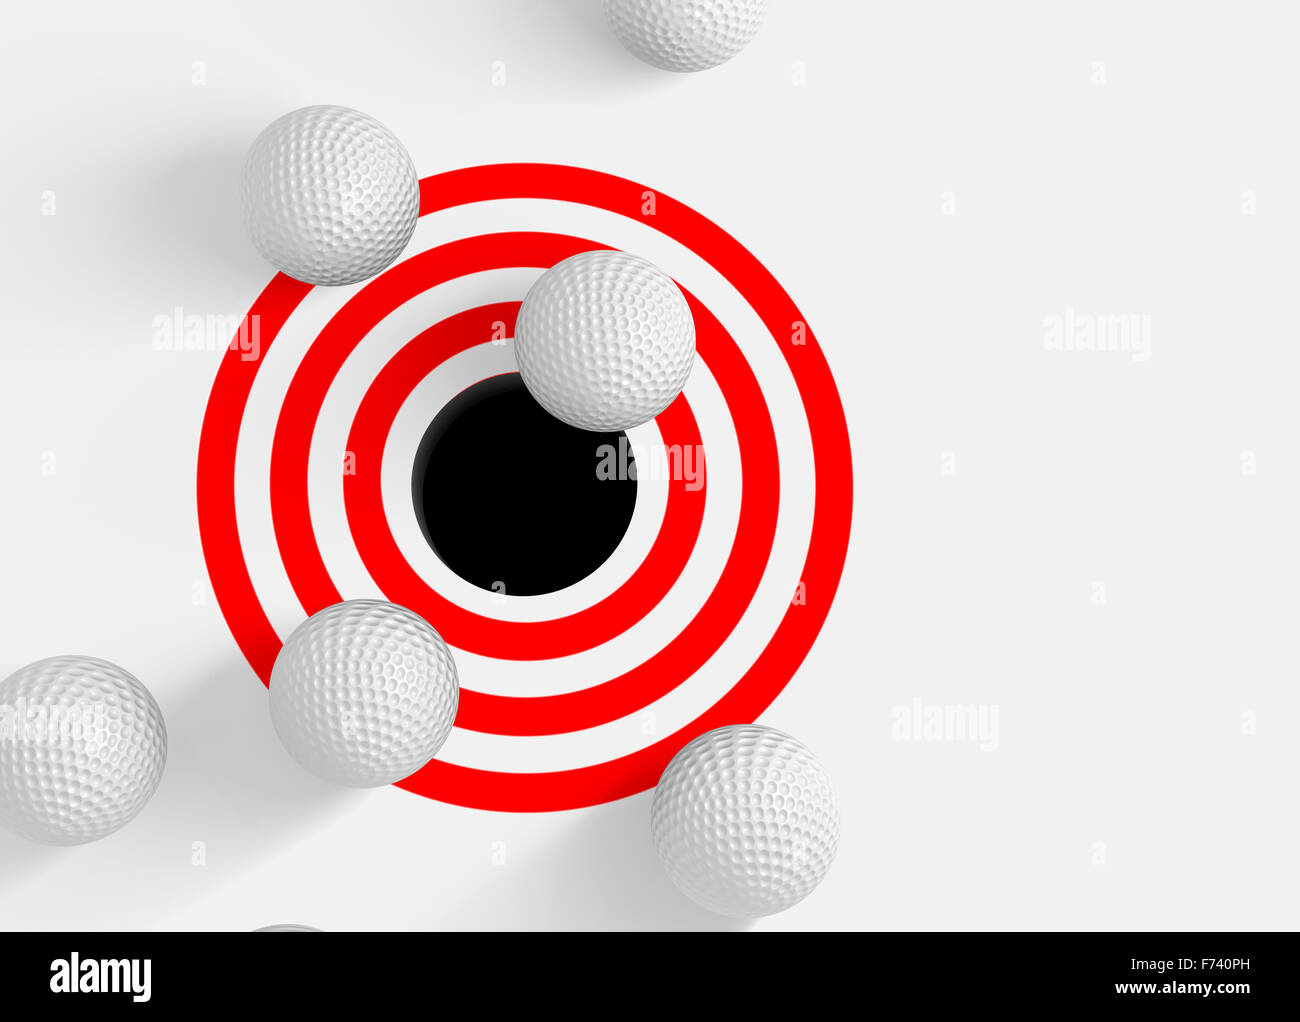 Conceptual 3d image with golf balls and hole - Stock Image